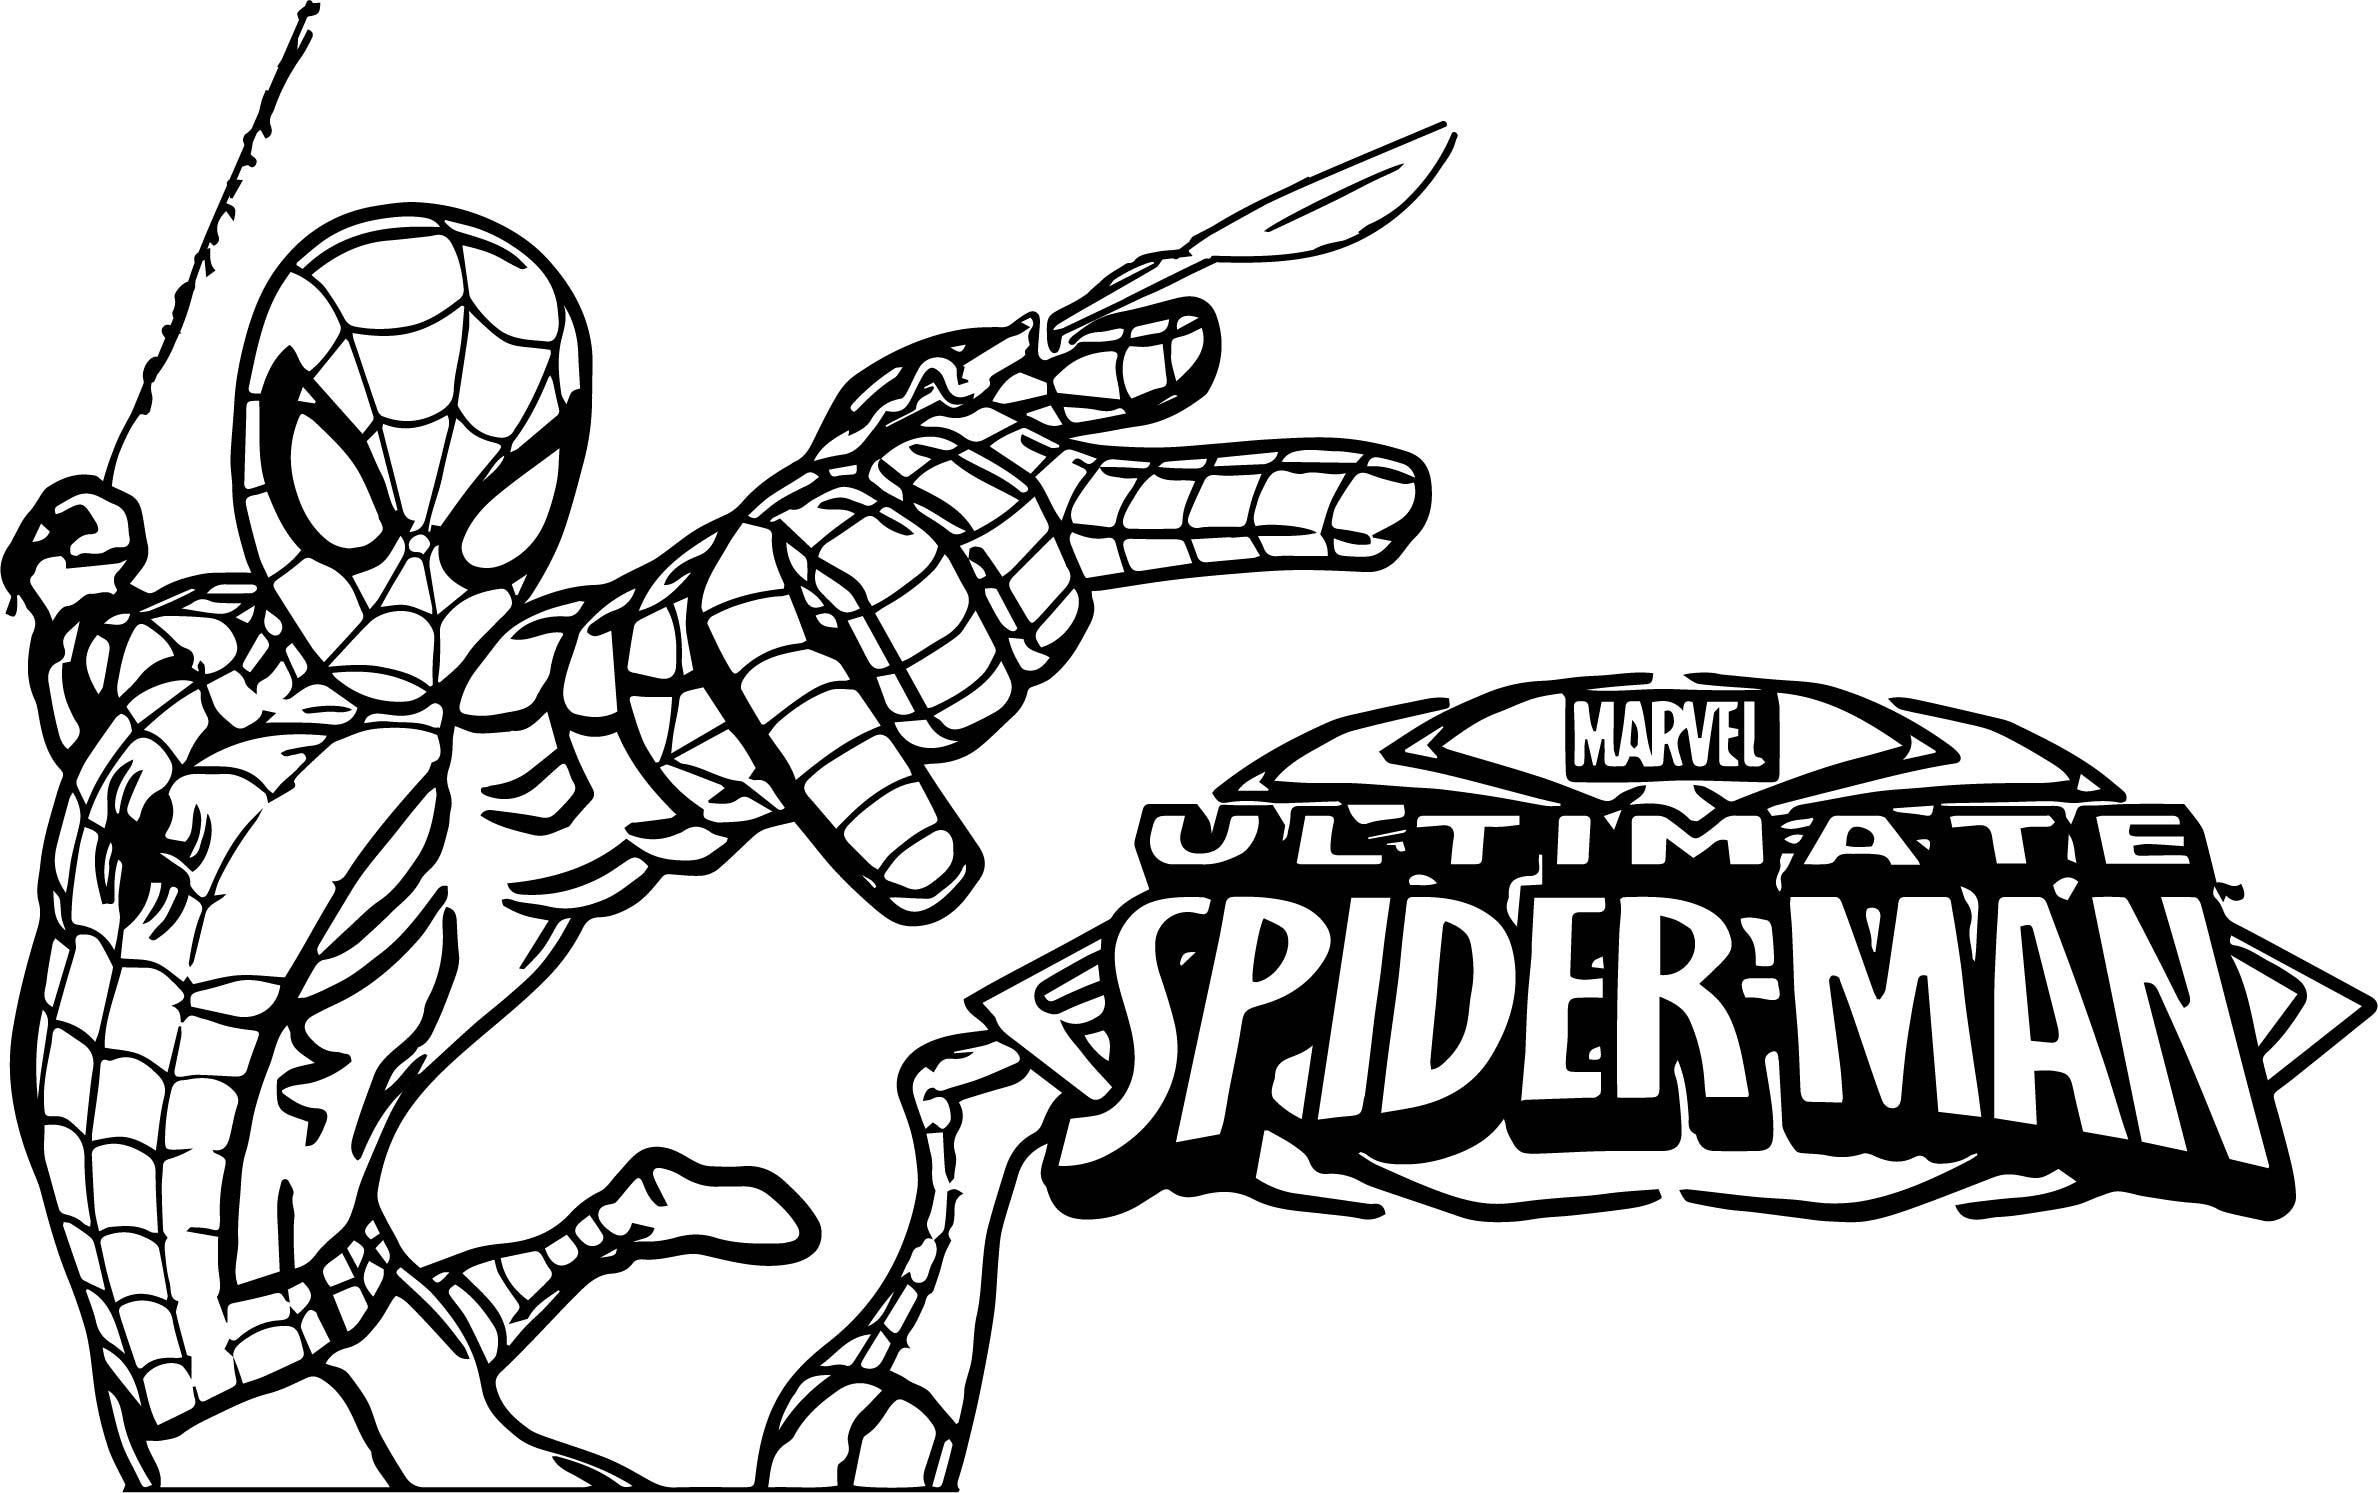 Spider Man Coloring Page Wecoloringpage 098 Wecoloringpage Com Spiderman Coloring Coloring Pages Coloring Books